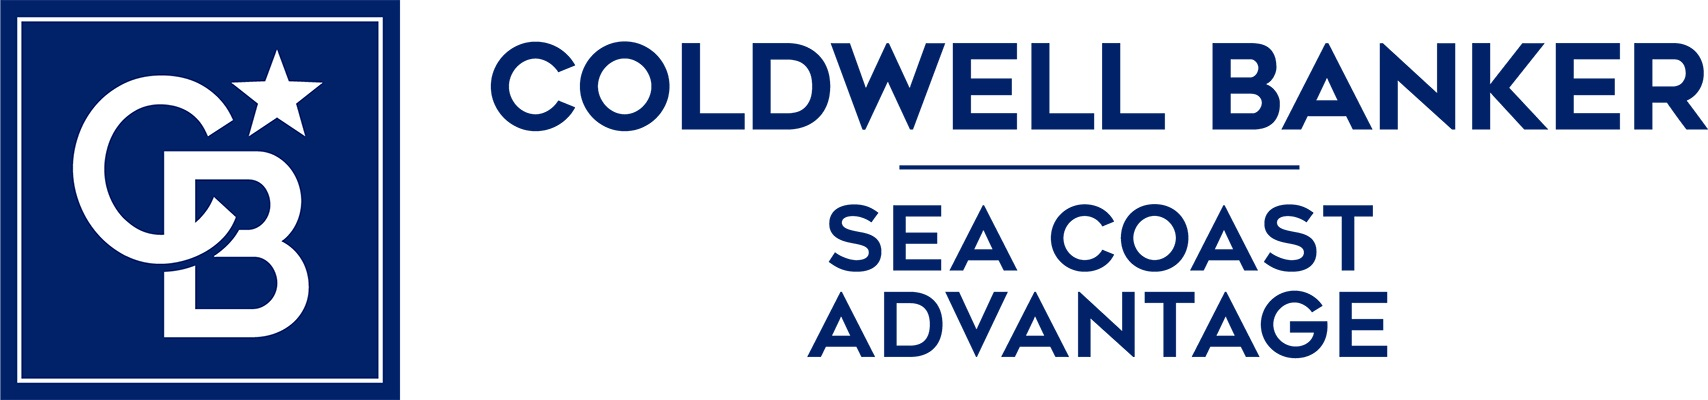 Corrin Dial - Coldwell Banker Sea Coast Advantage Realty